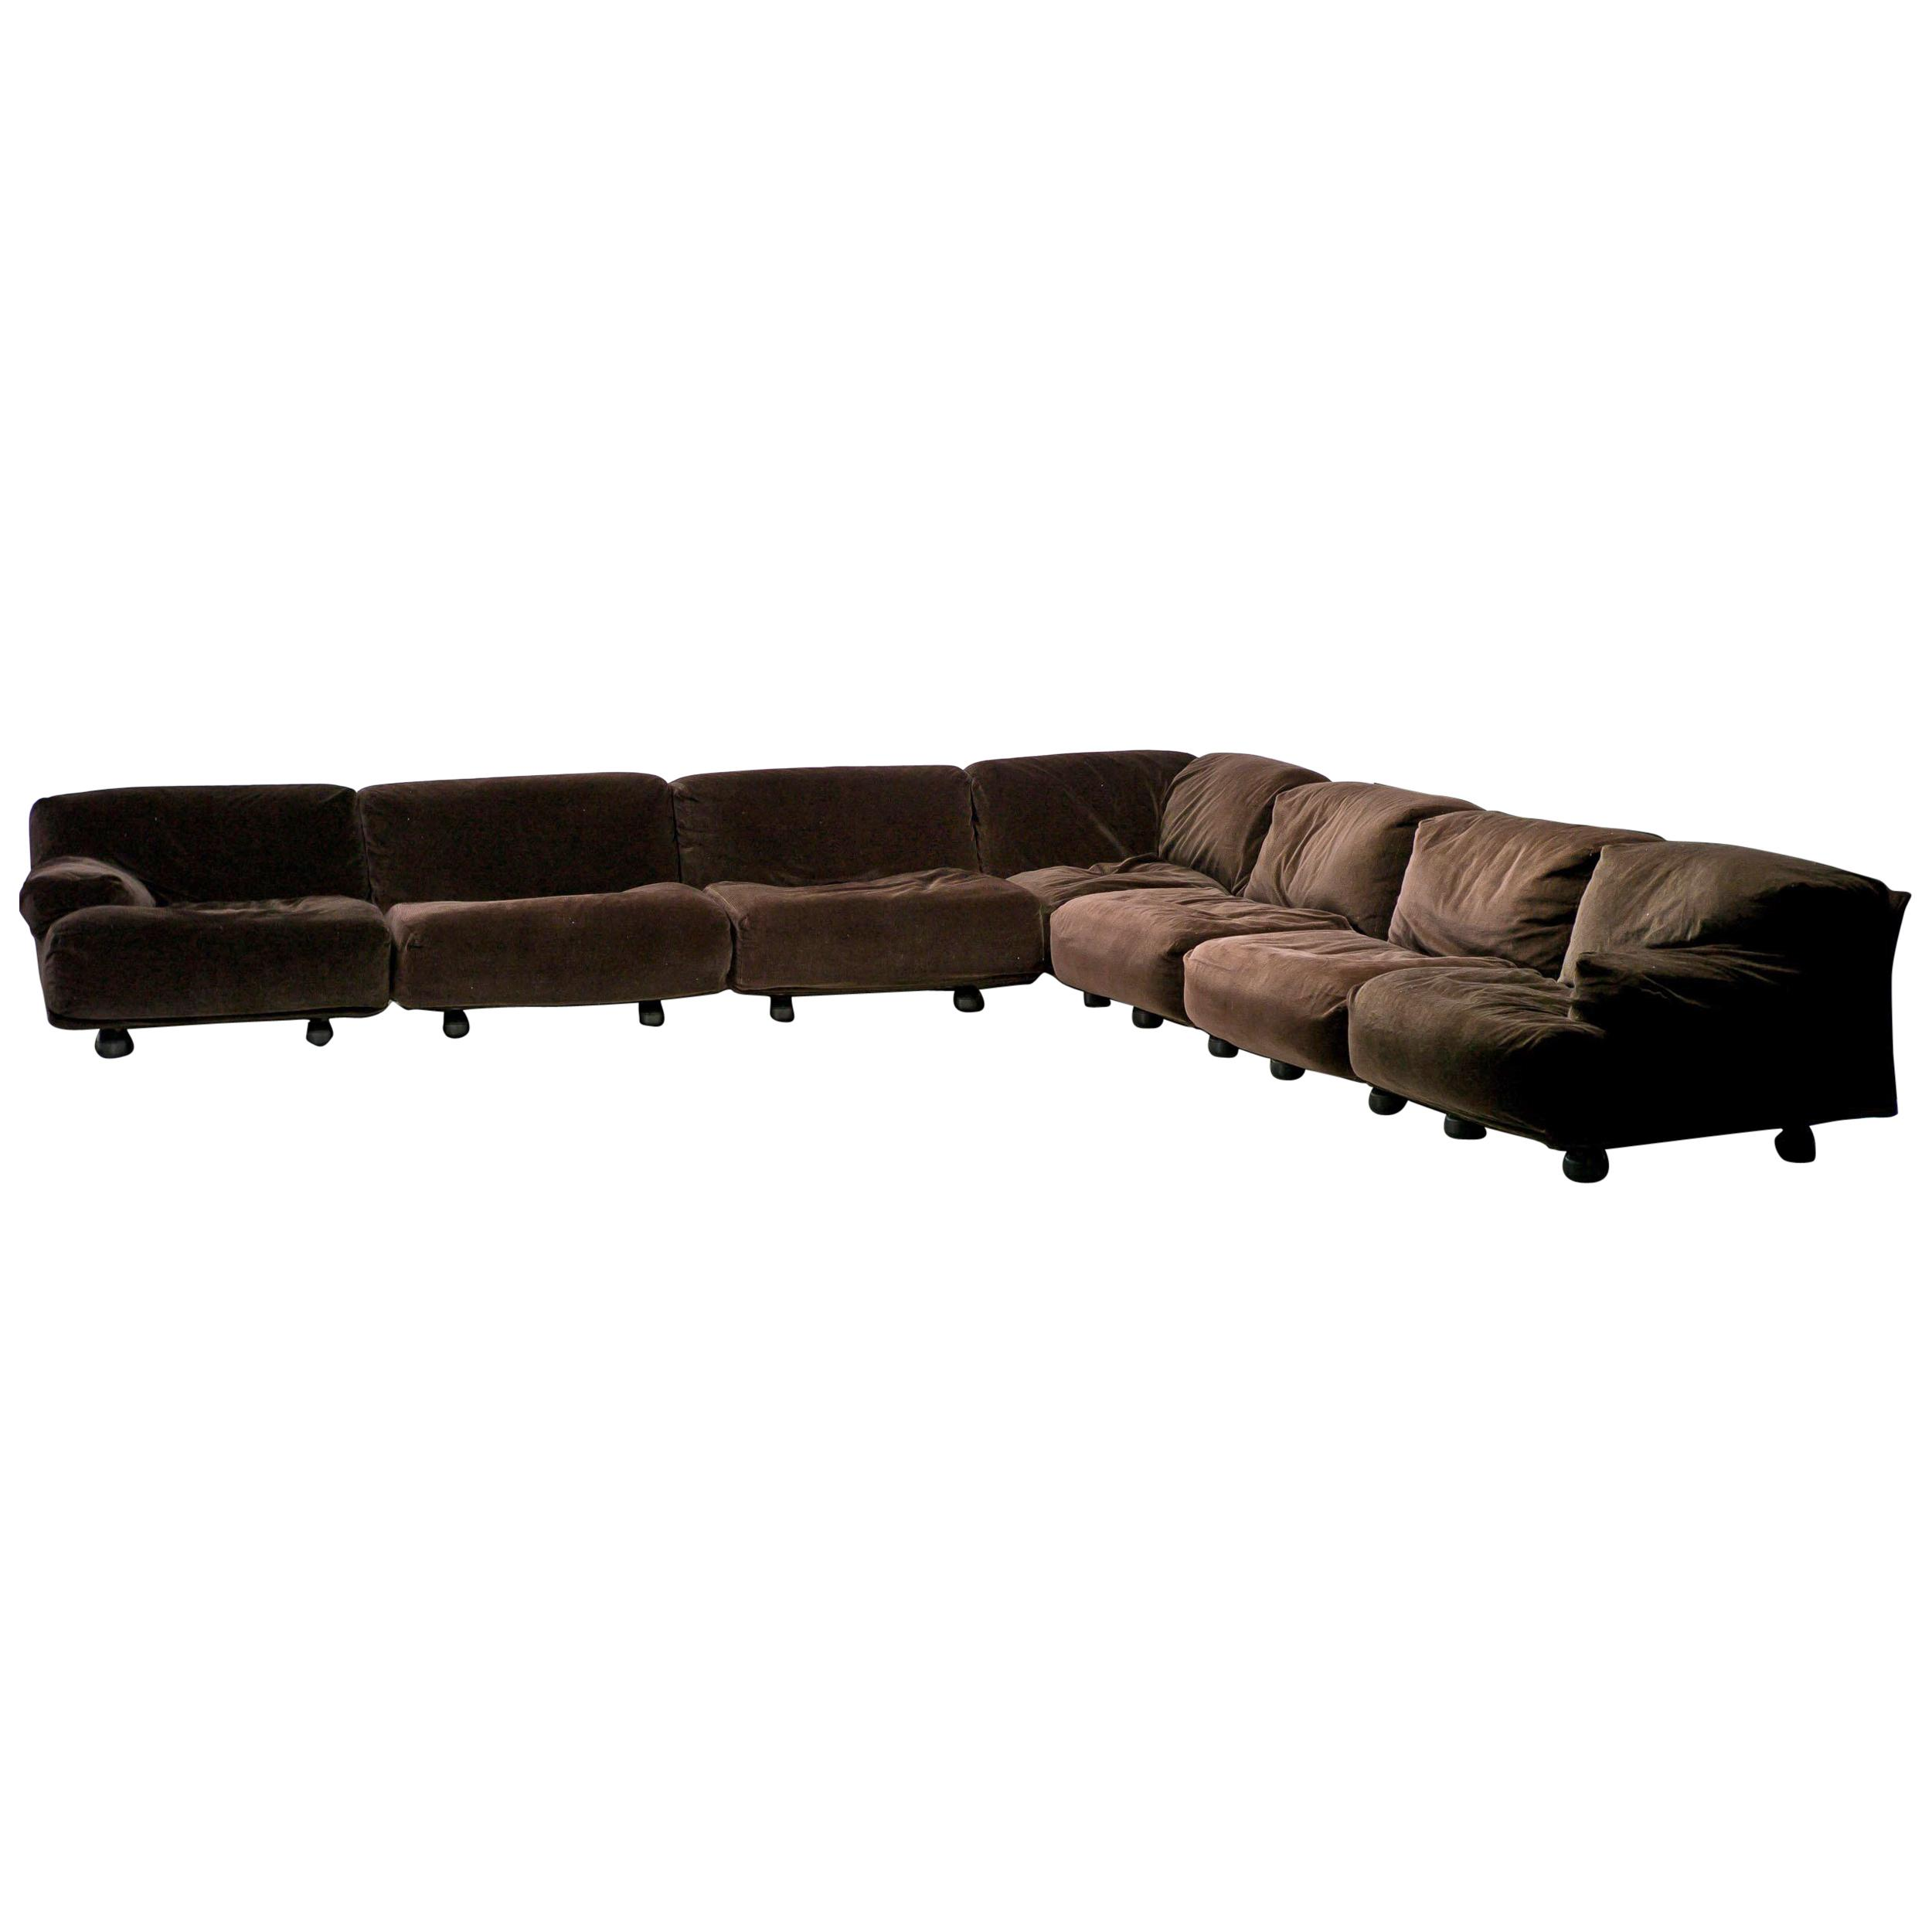 Cheap Modular Lounges Very Large Cassina Fiandra Modular Sofa